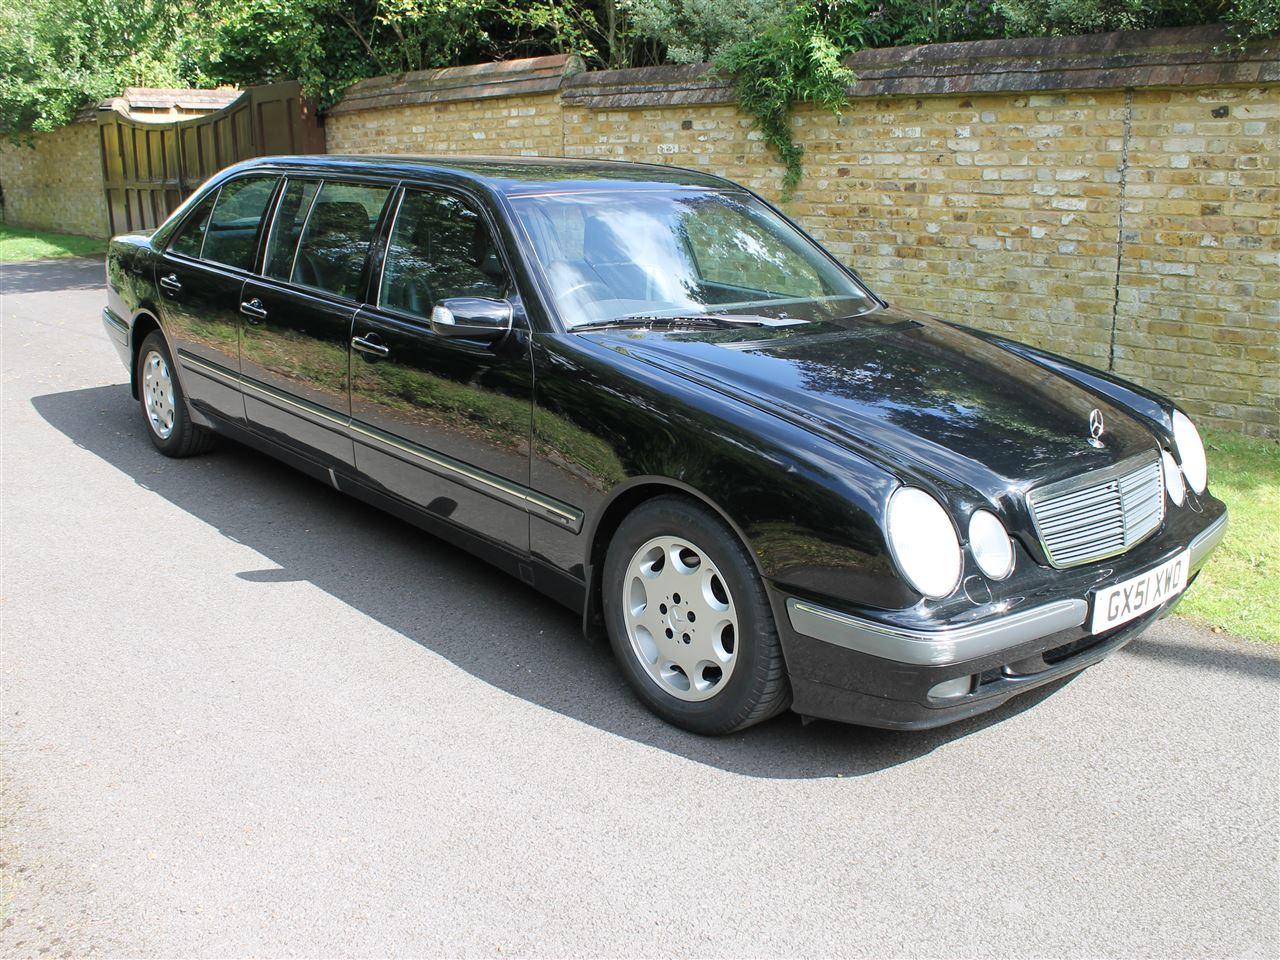 2001 MERCEDES BENZ E280 'Binz' Six Door Limousine